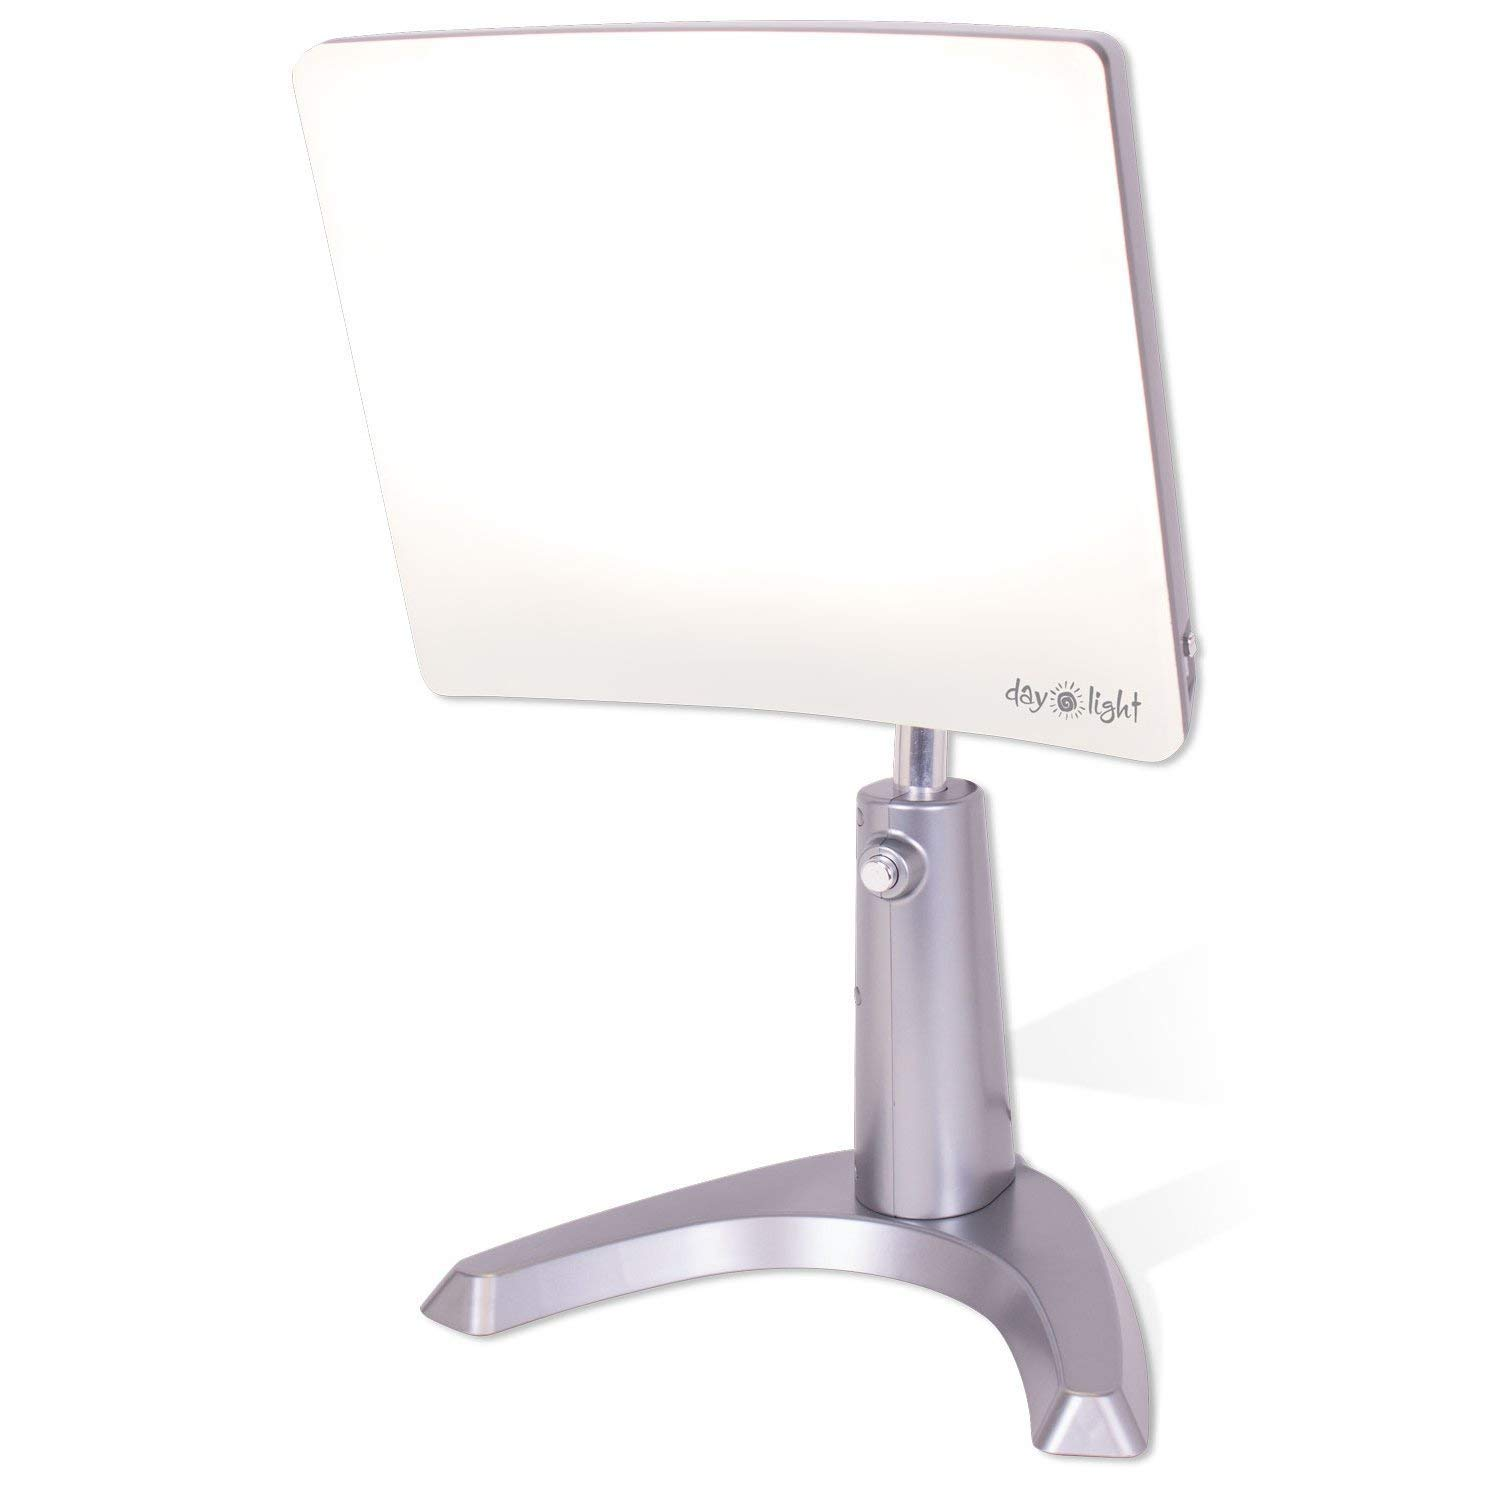 Carex Day-Light Classic Plus Bright Light Therapy Lamp - 10,000 LUX - Sun Lamp Mood Light by Carex Health Brands (Image #1)